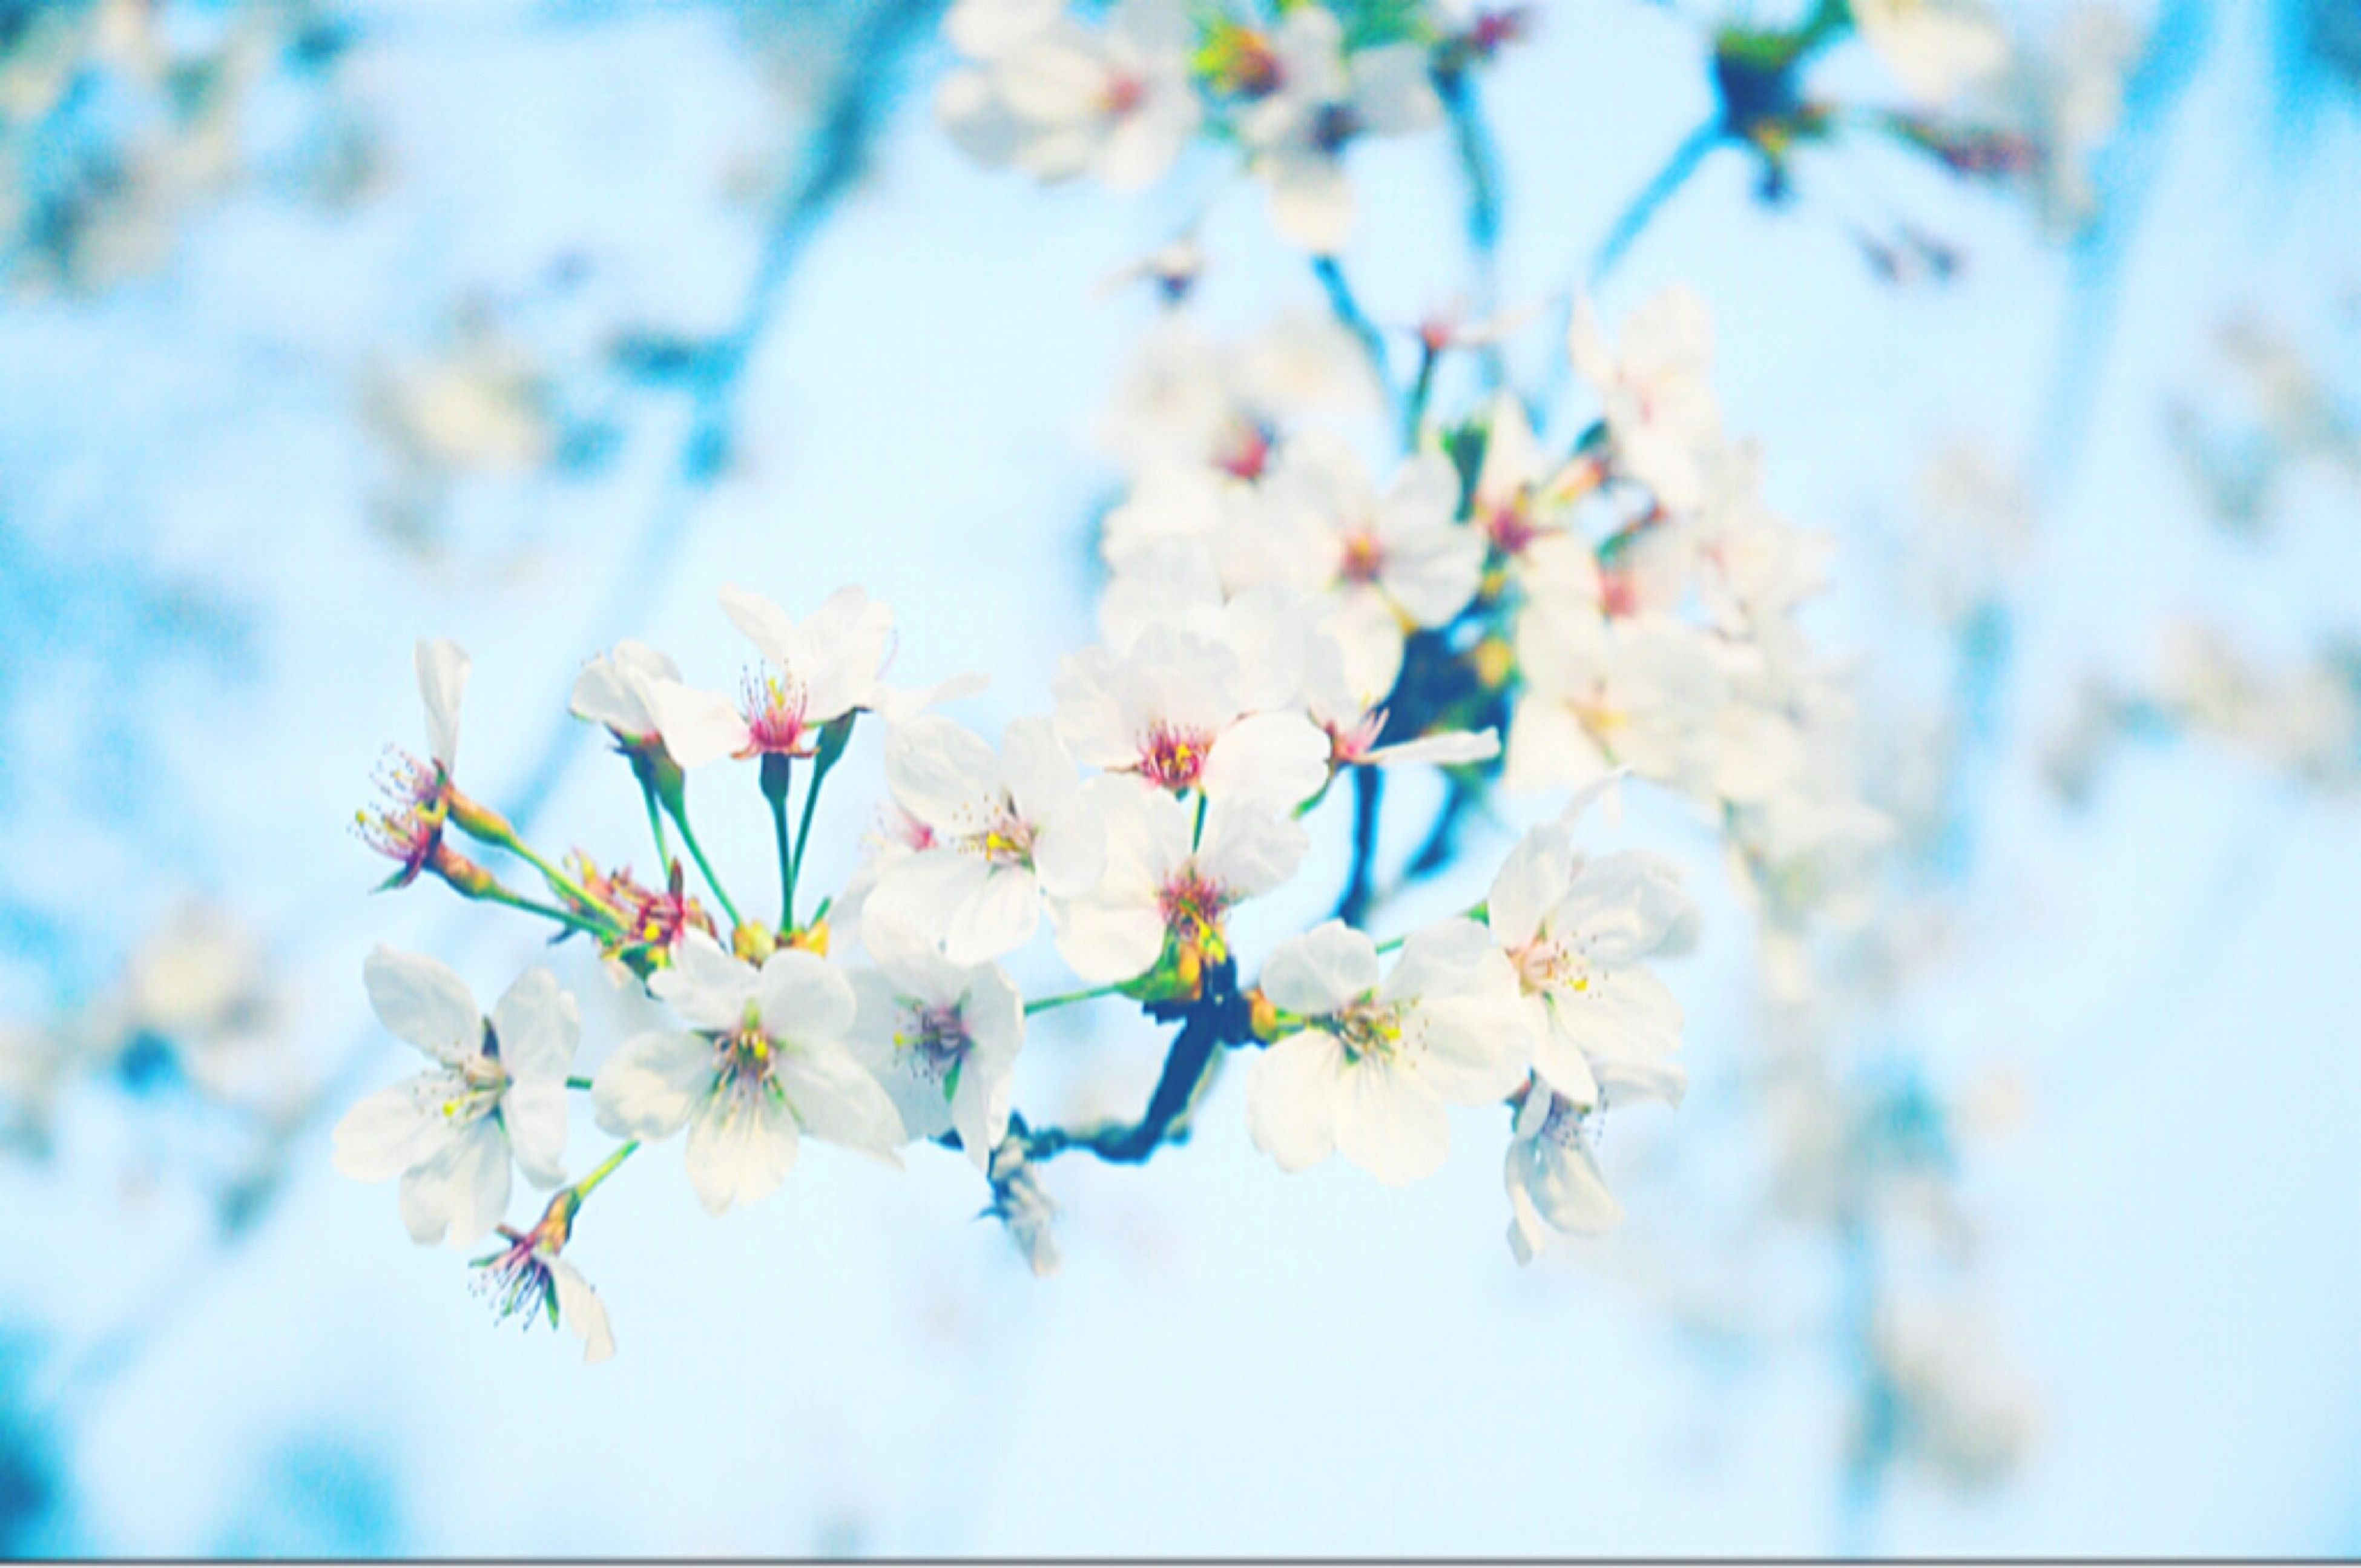 flower, freshness, fragility, growth, cherry blossom, beauty in nature, focus on foreground, petal, branch, tree, white color, nature, blossom, close-up, blooming, in bloom, selective focus, cherry tree, springtime, day